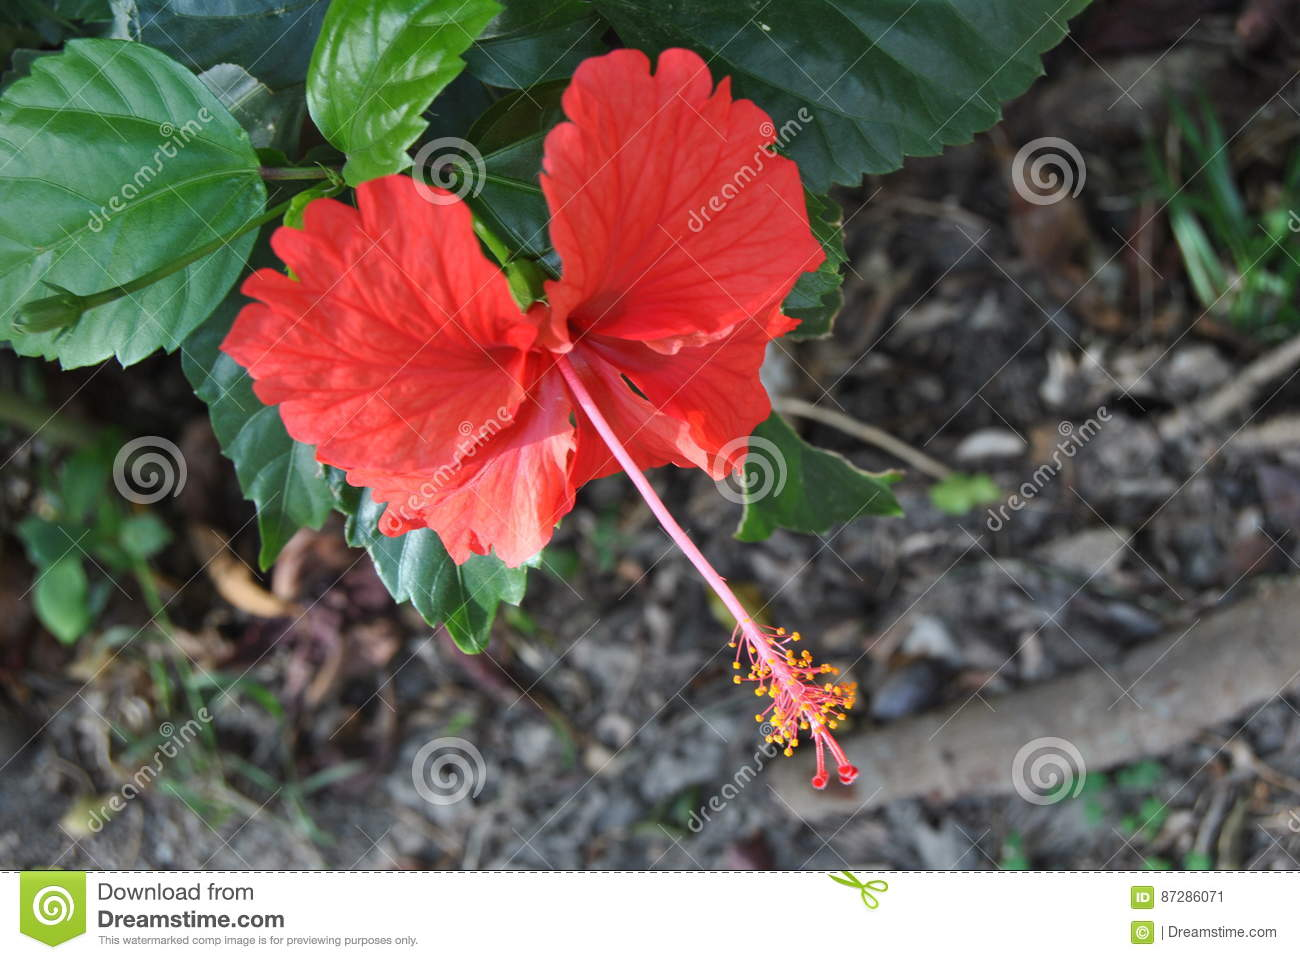 Red hibiscus stock image image of nature flower tropic 87286071 download red hibiscus stock image image of nature flower tropic 87286071 izmirmasajfo